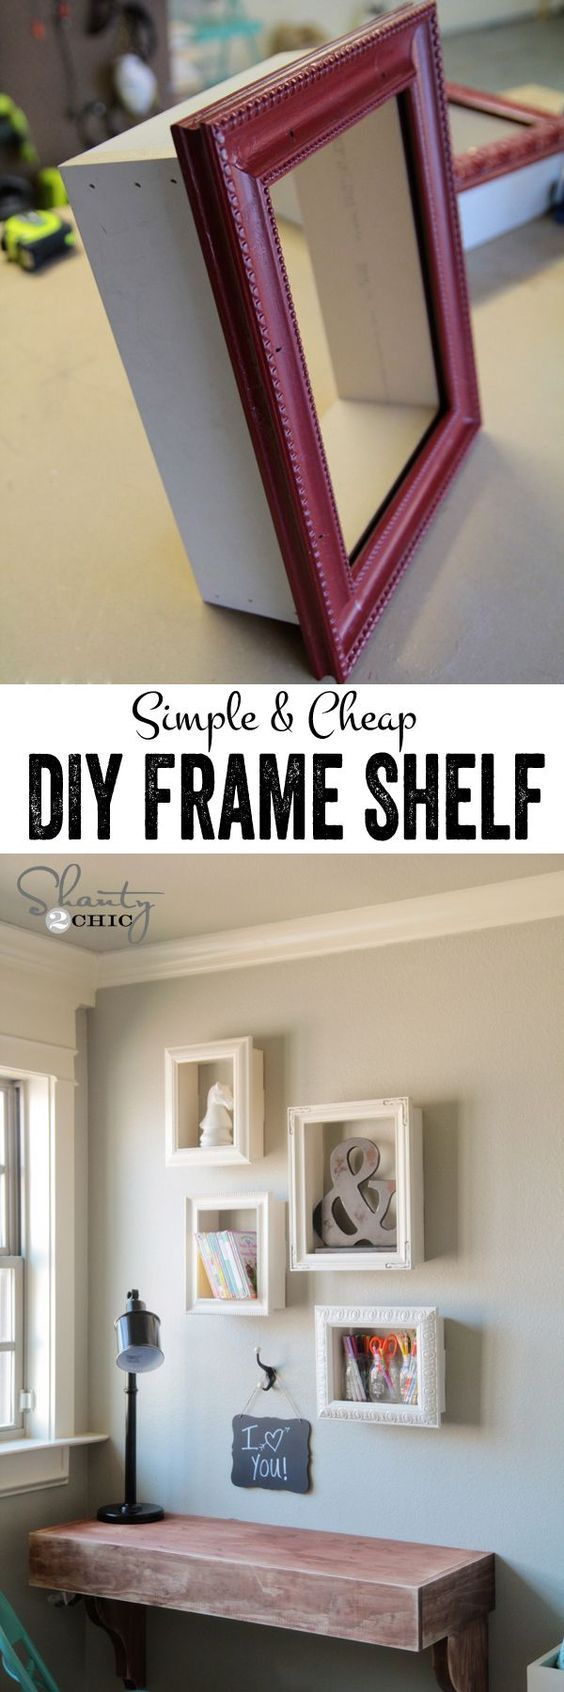 Really cute and simple DIY frame shelves! Look how fun they are! This is such simple project, and a great way to reuse old frames or to dress up cheap frames. #cuteframeshelf #repurposeoldframes #dressupcheapframes